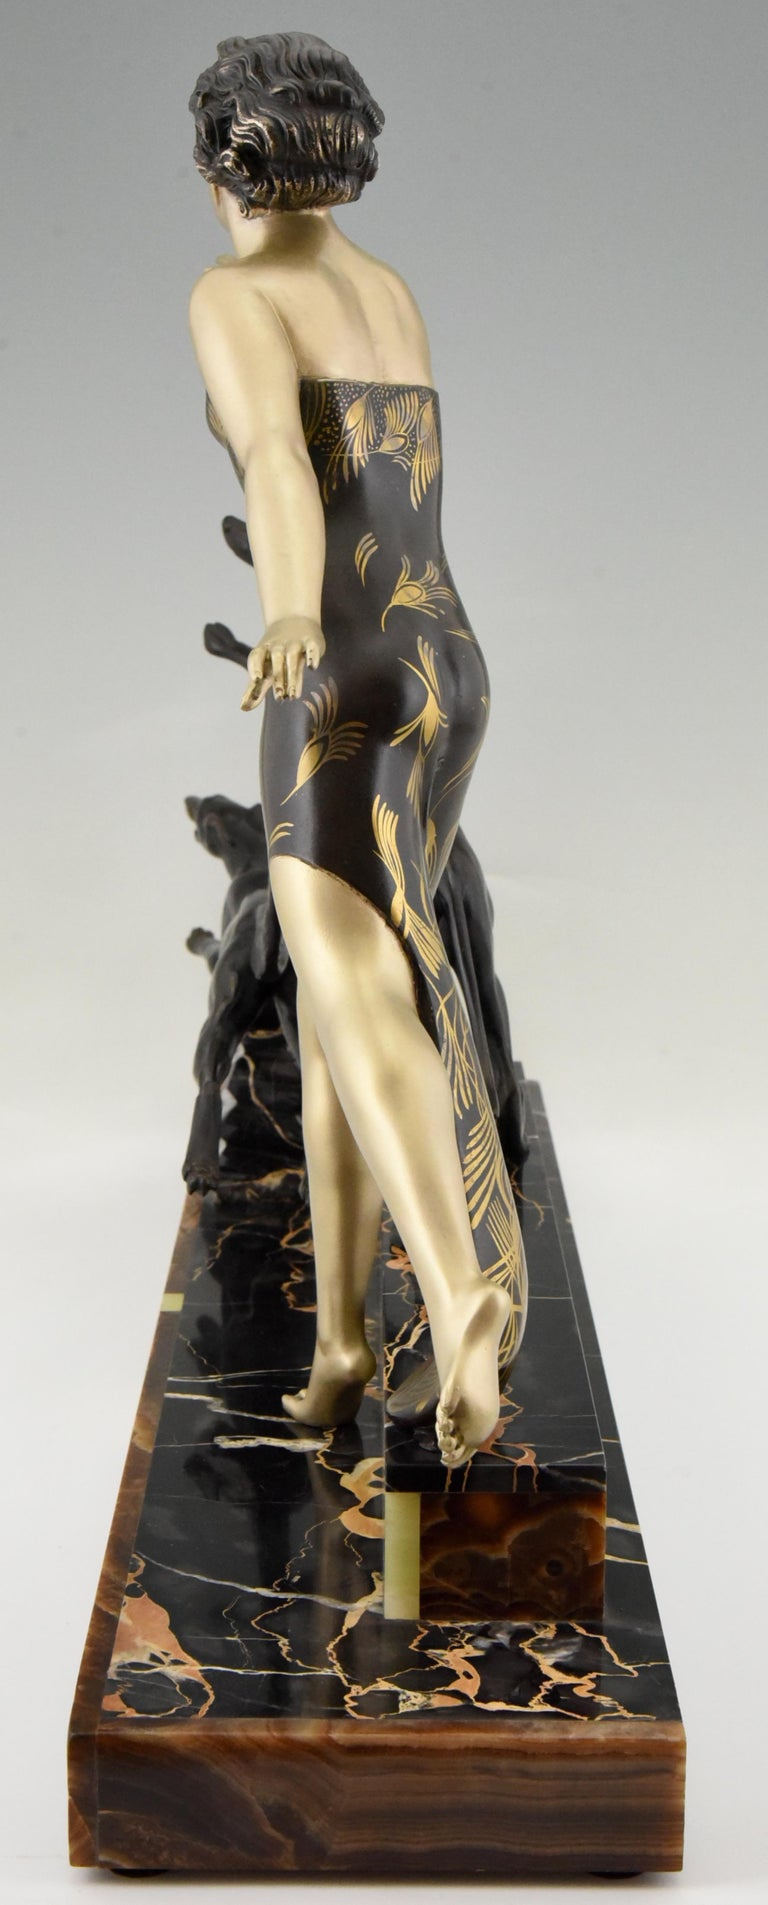 Art Deco Sculpture Lady with Dogs by Uriano, France, 1930 For Sale 1